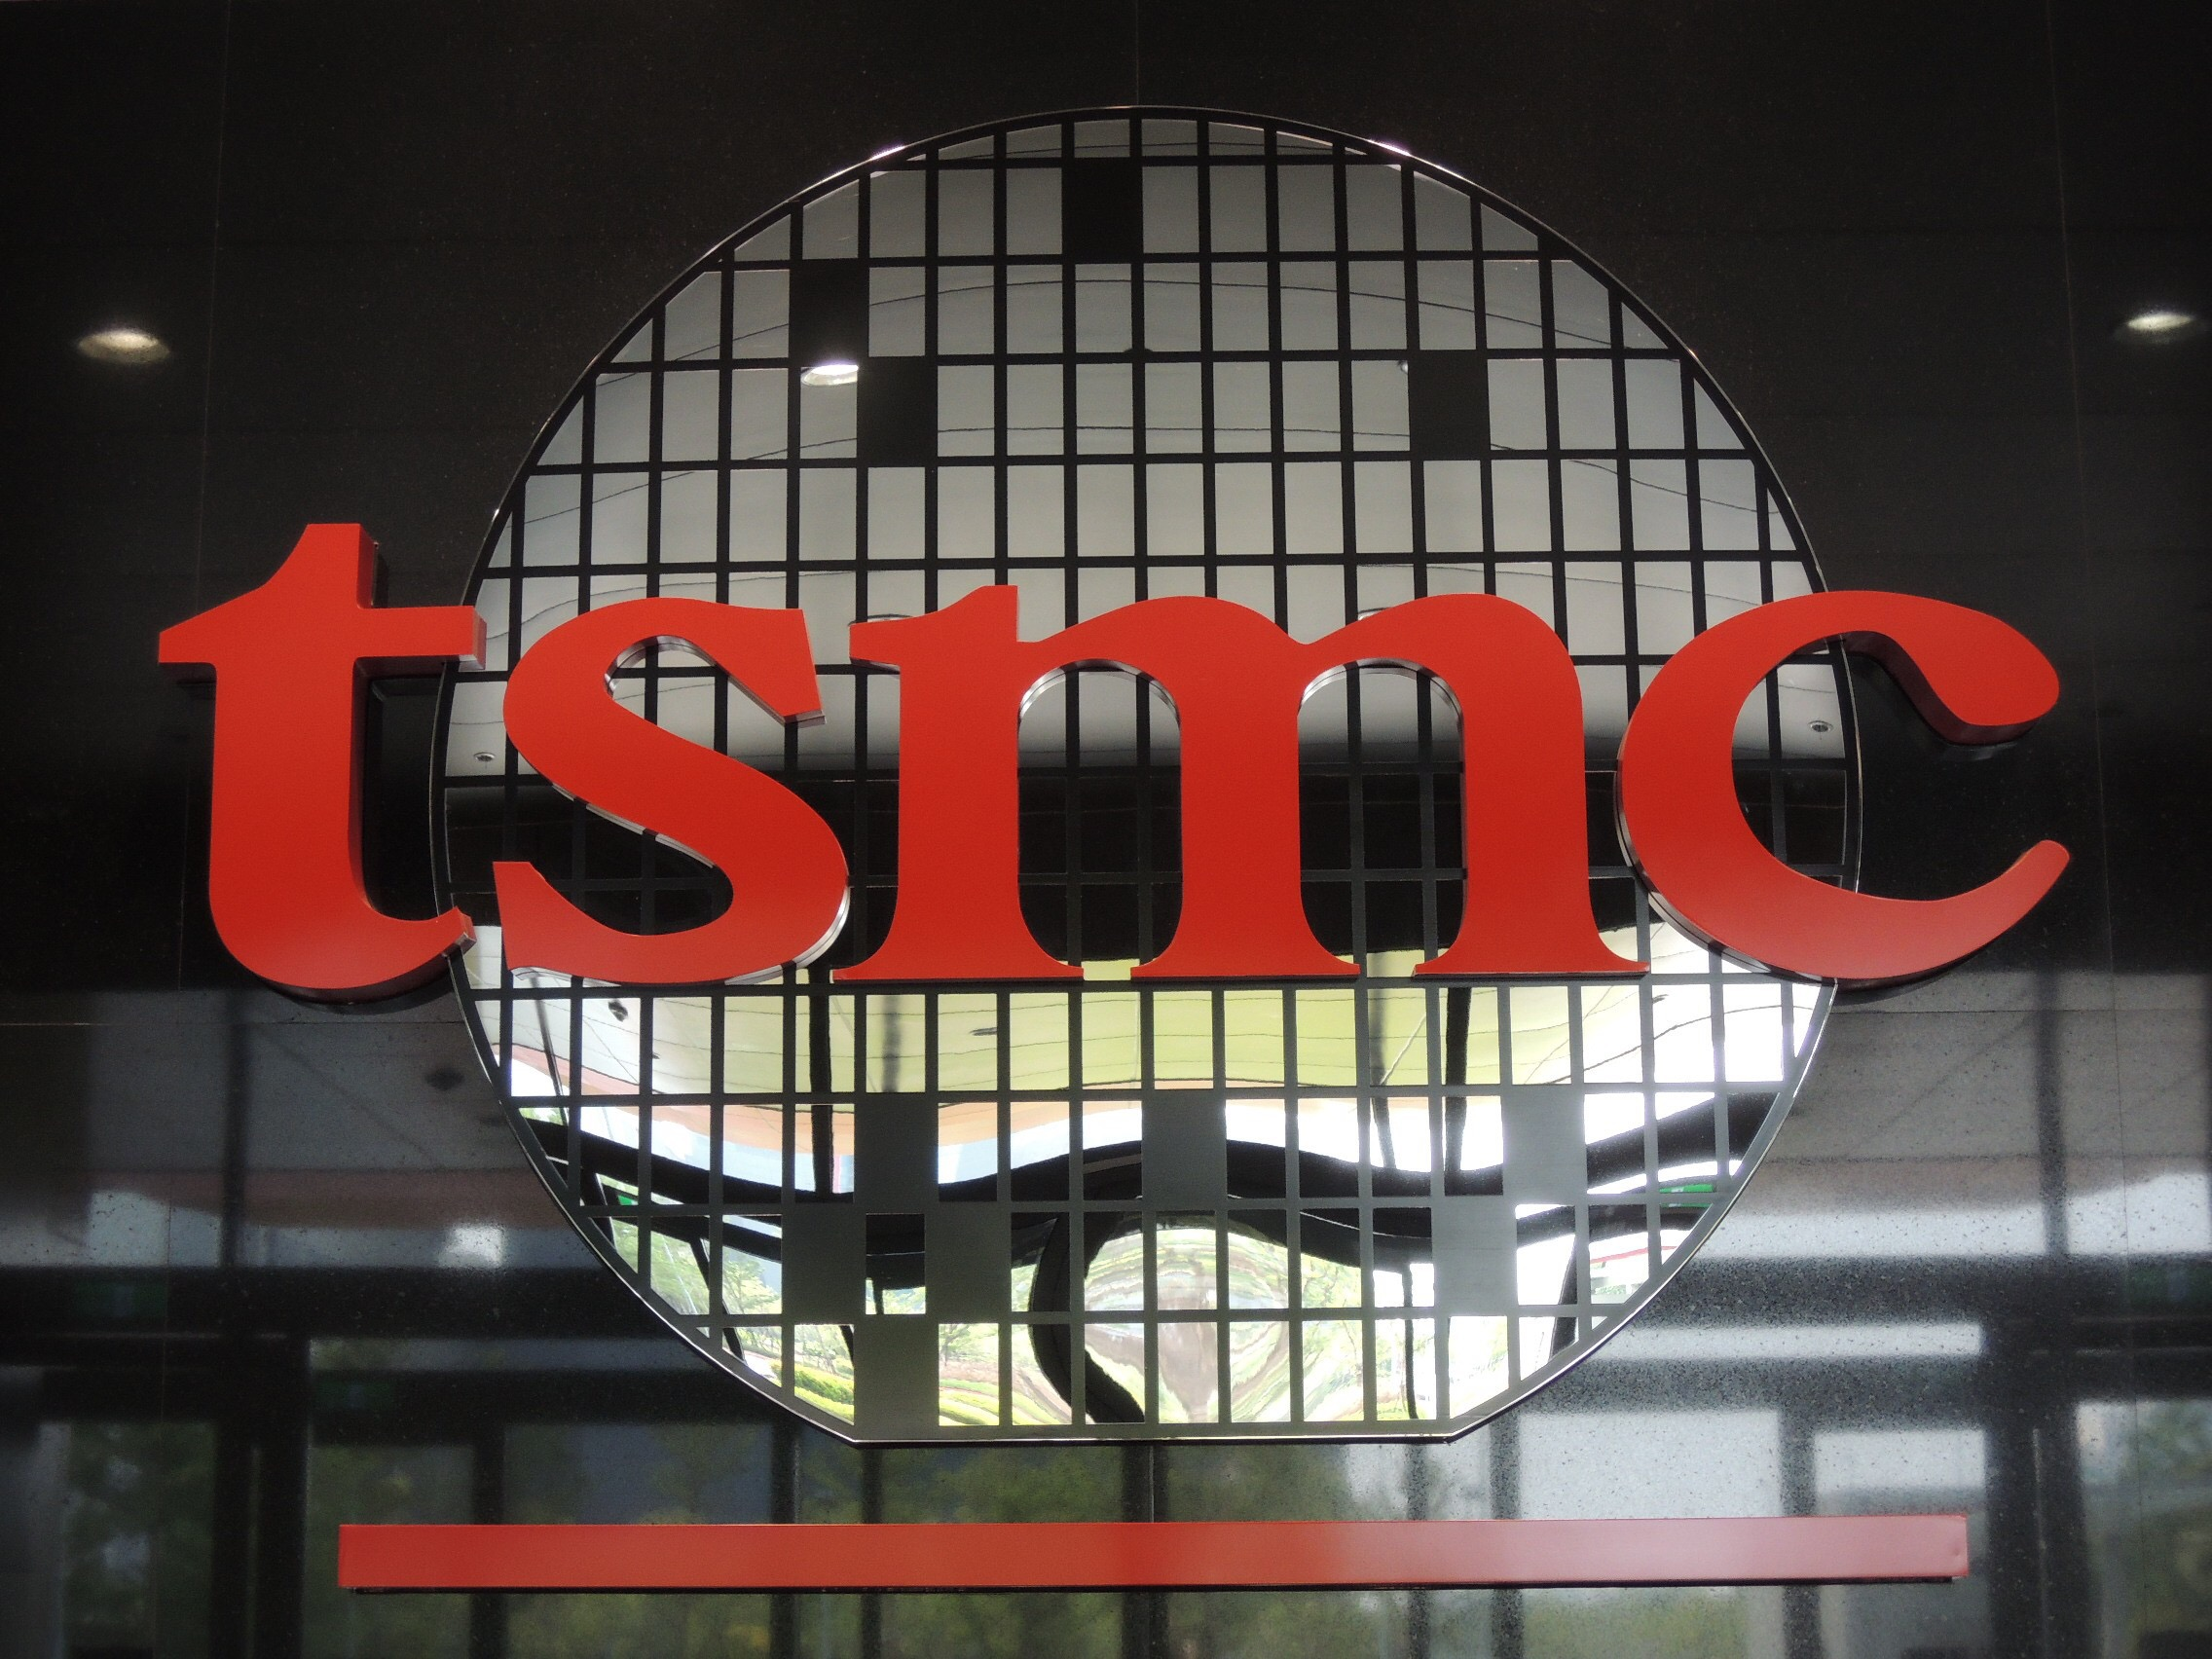 TSMC's 'iPhone 7' chip production could be impacted by recent earthquake